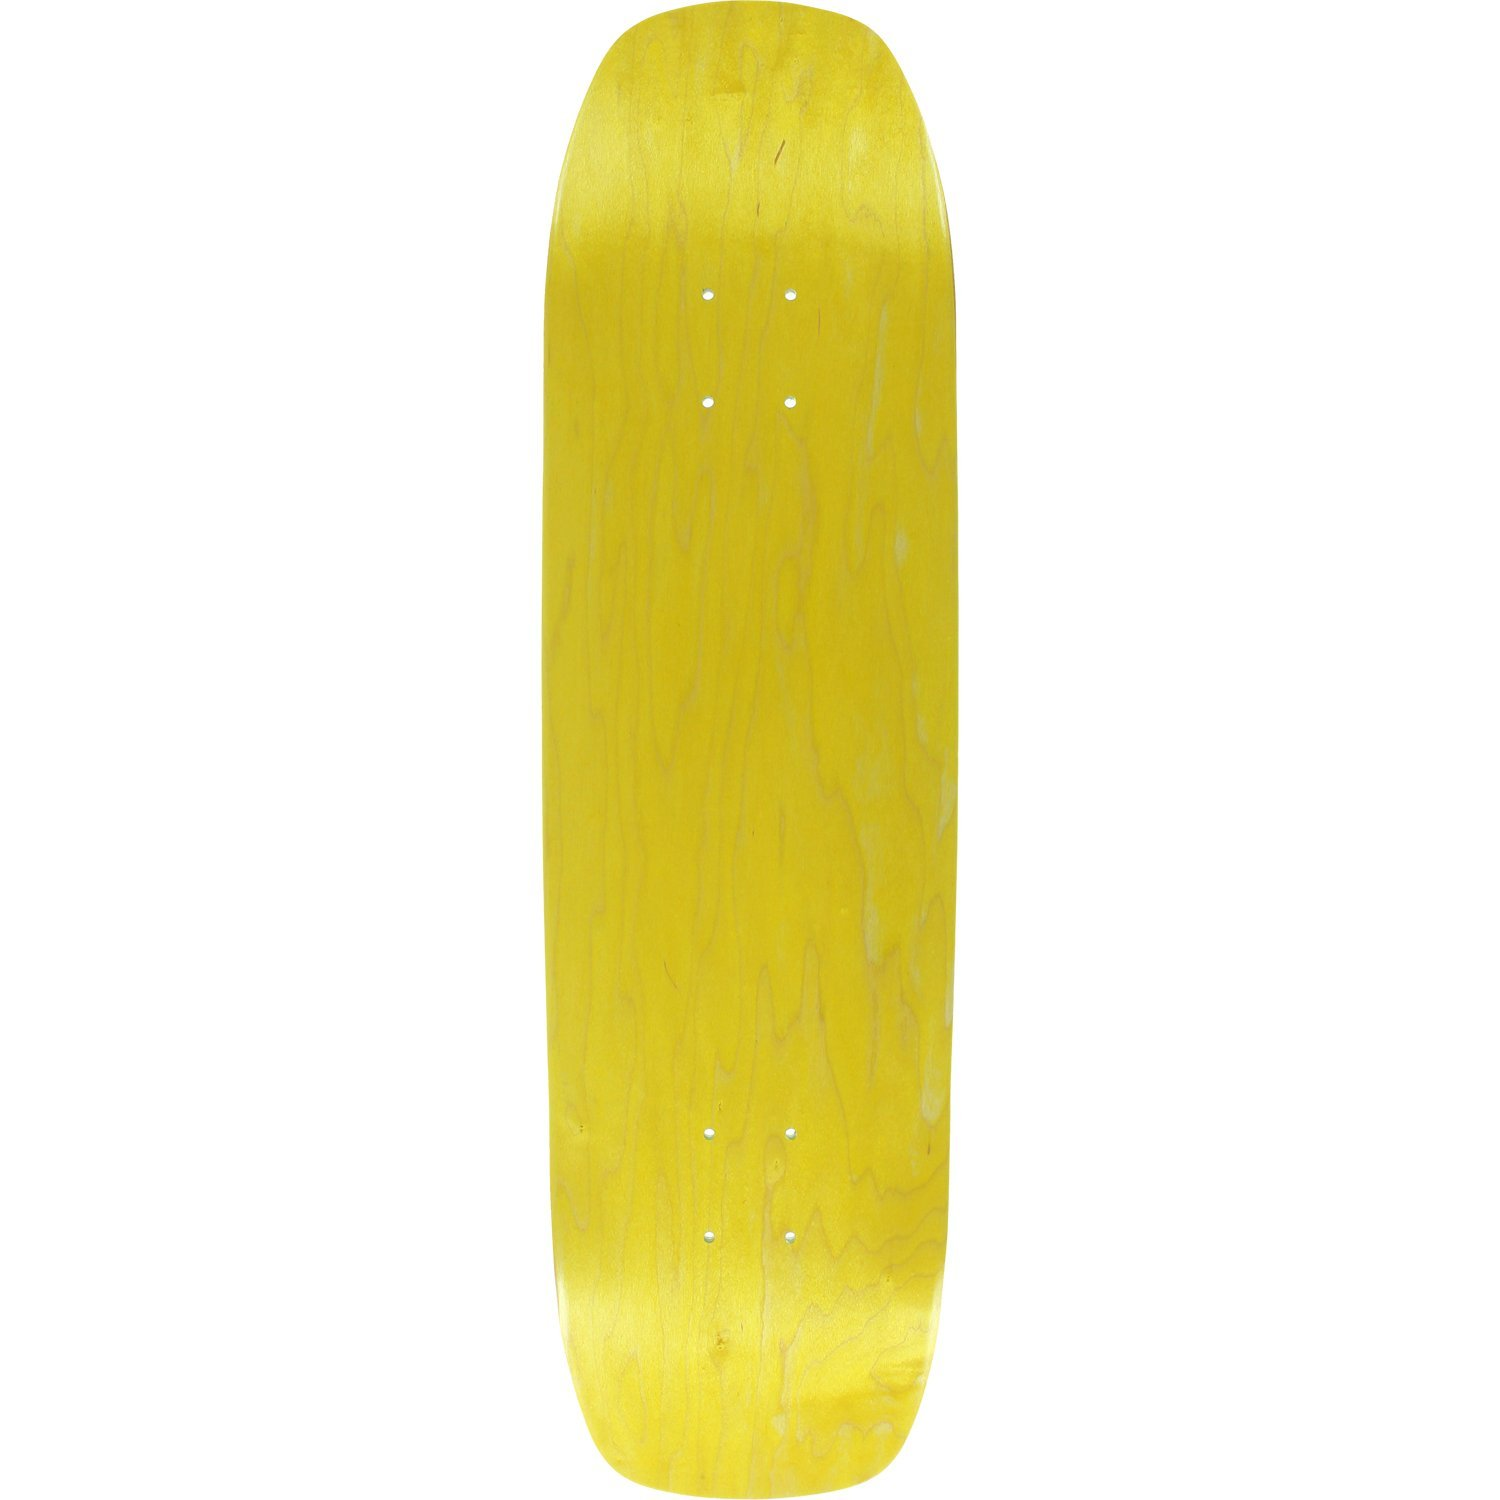 Universo Extremo Boards Blank Shovel Skateboard Deck -8.4x32.12 Asssorted Stain Deck ONLY - (mfg by Quincy Woodwrights USA)